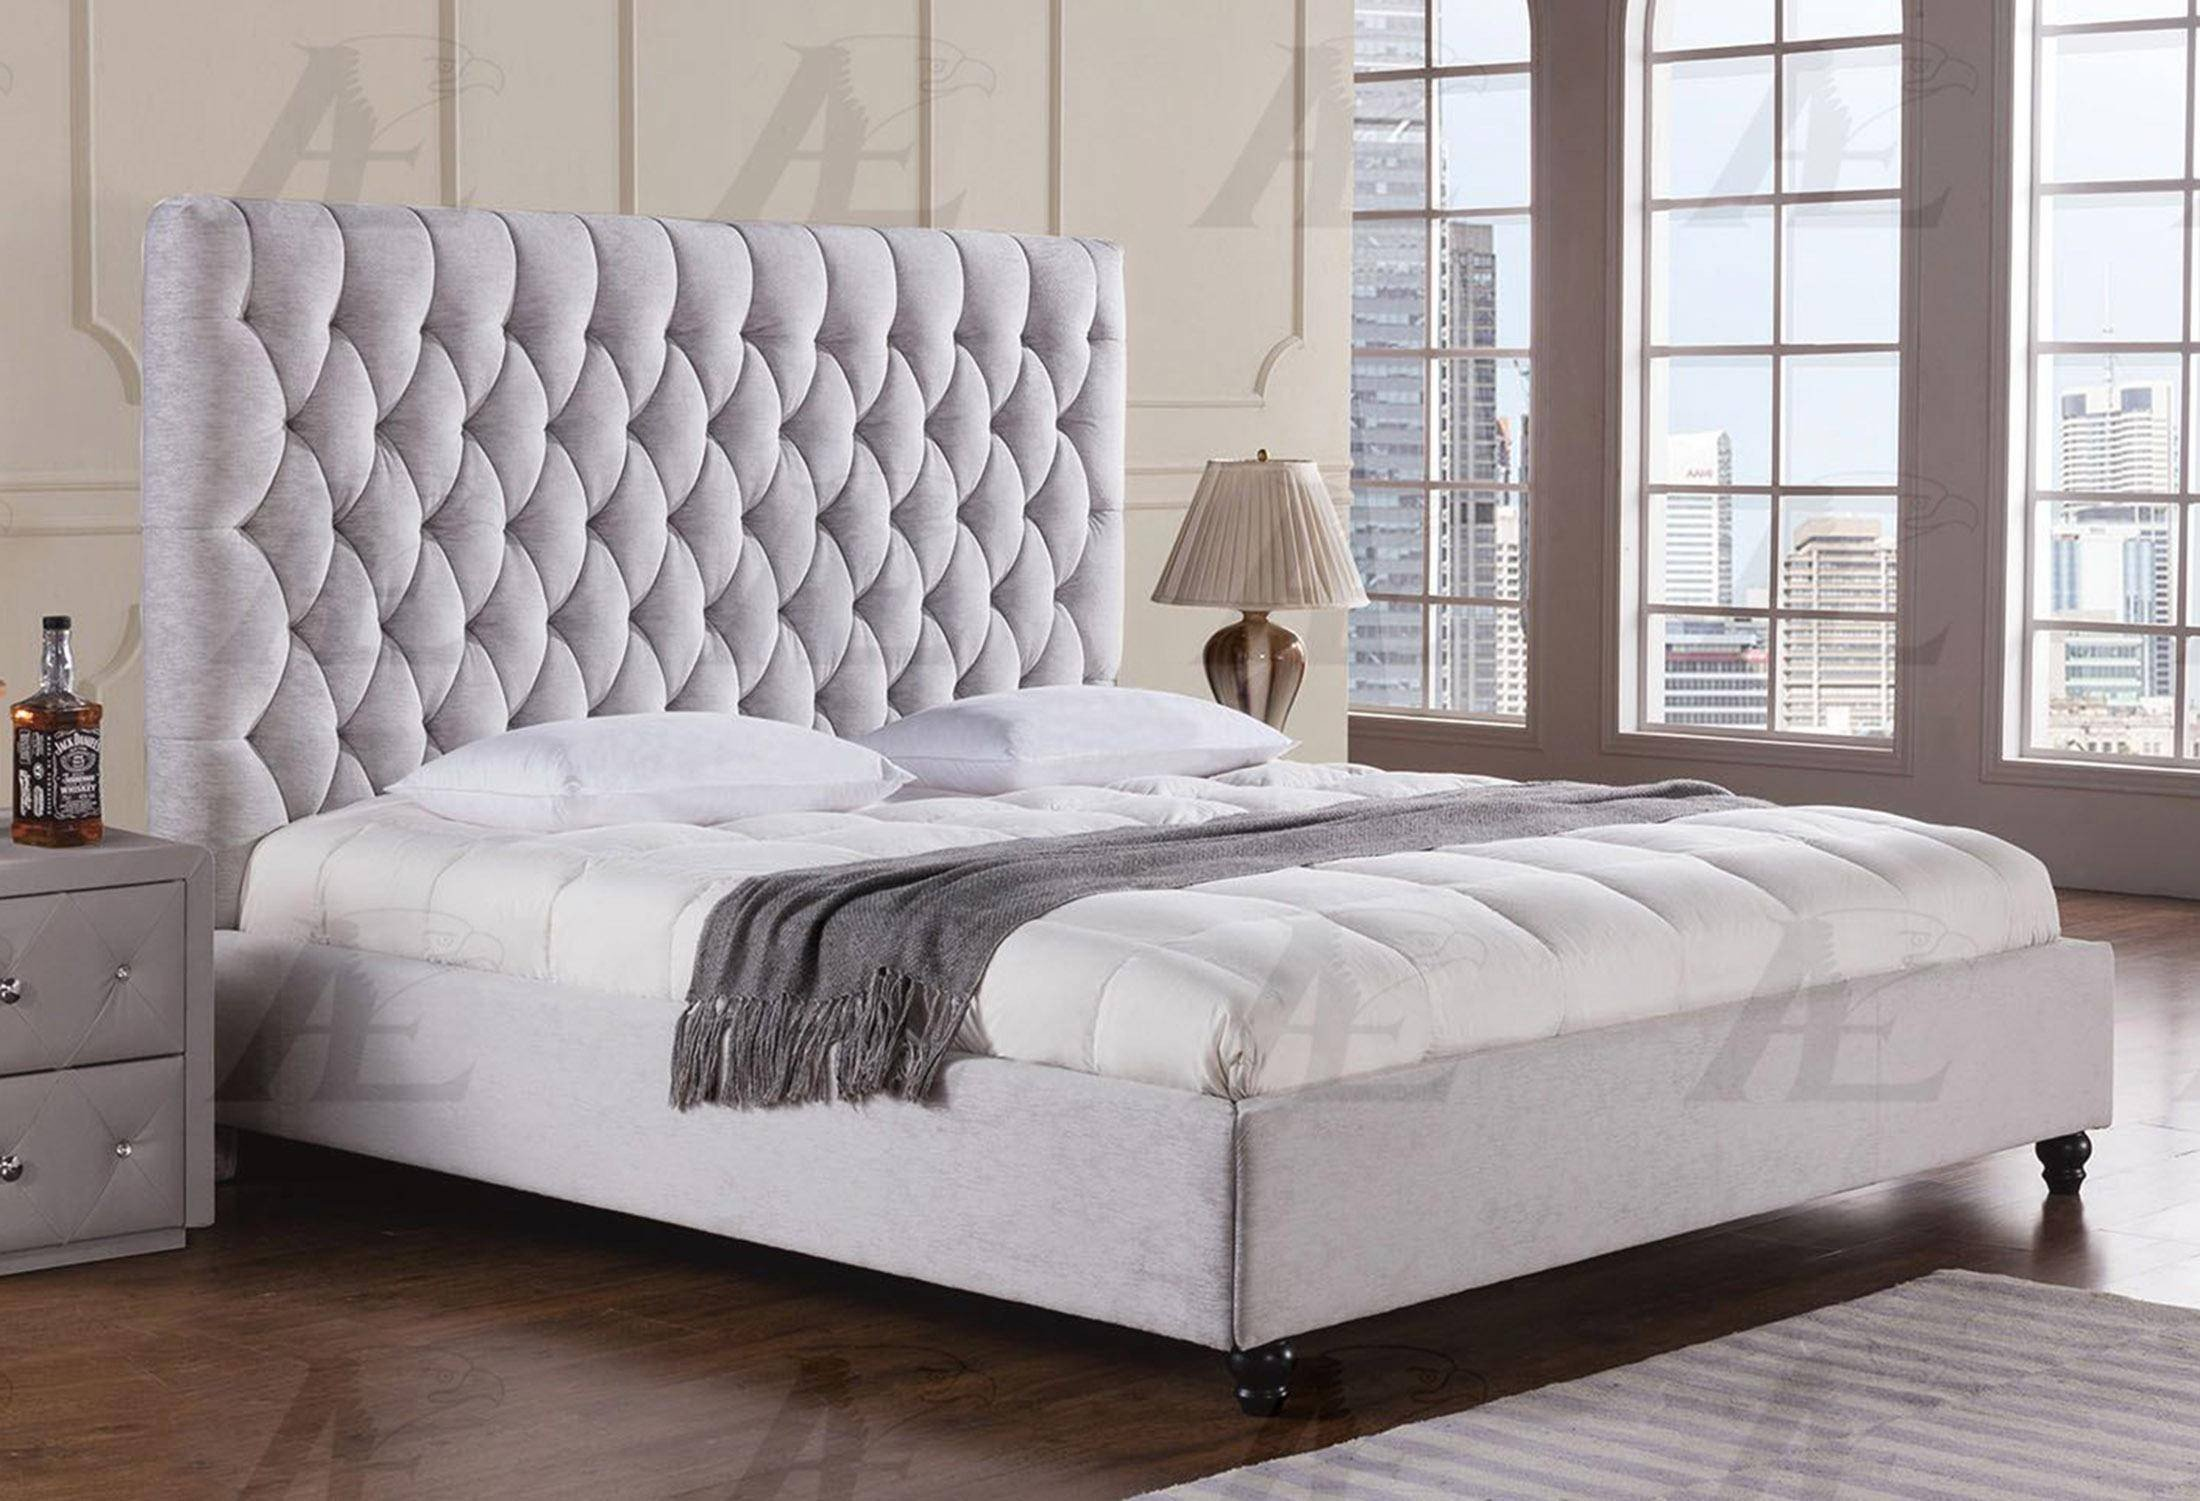 Light Wood Bedroom Furniture Awesome American Eagle Furniture B D060 Light Gray Queen Size Bed